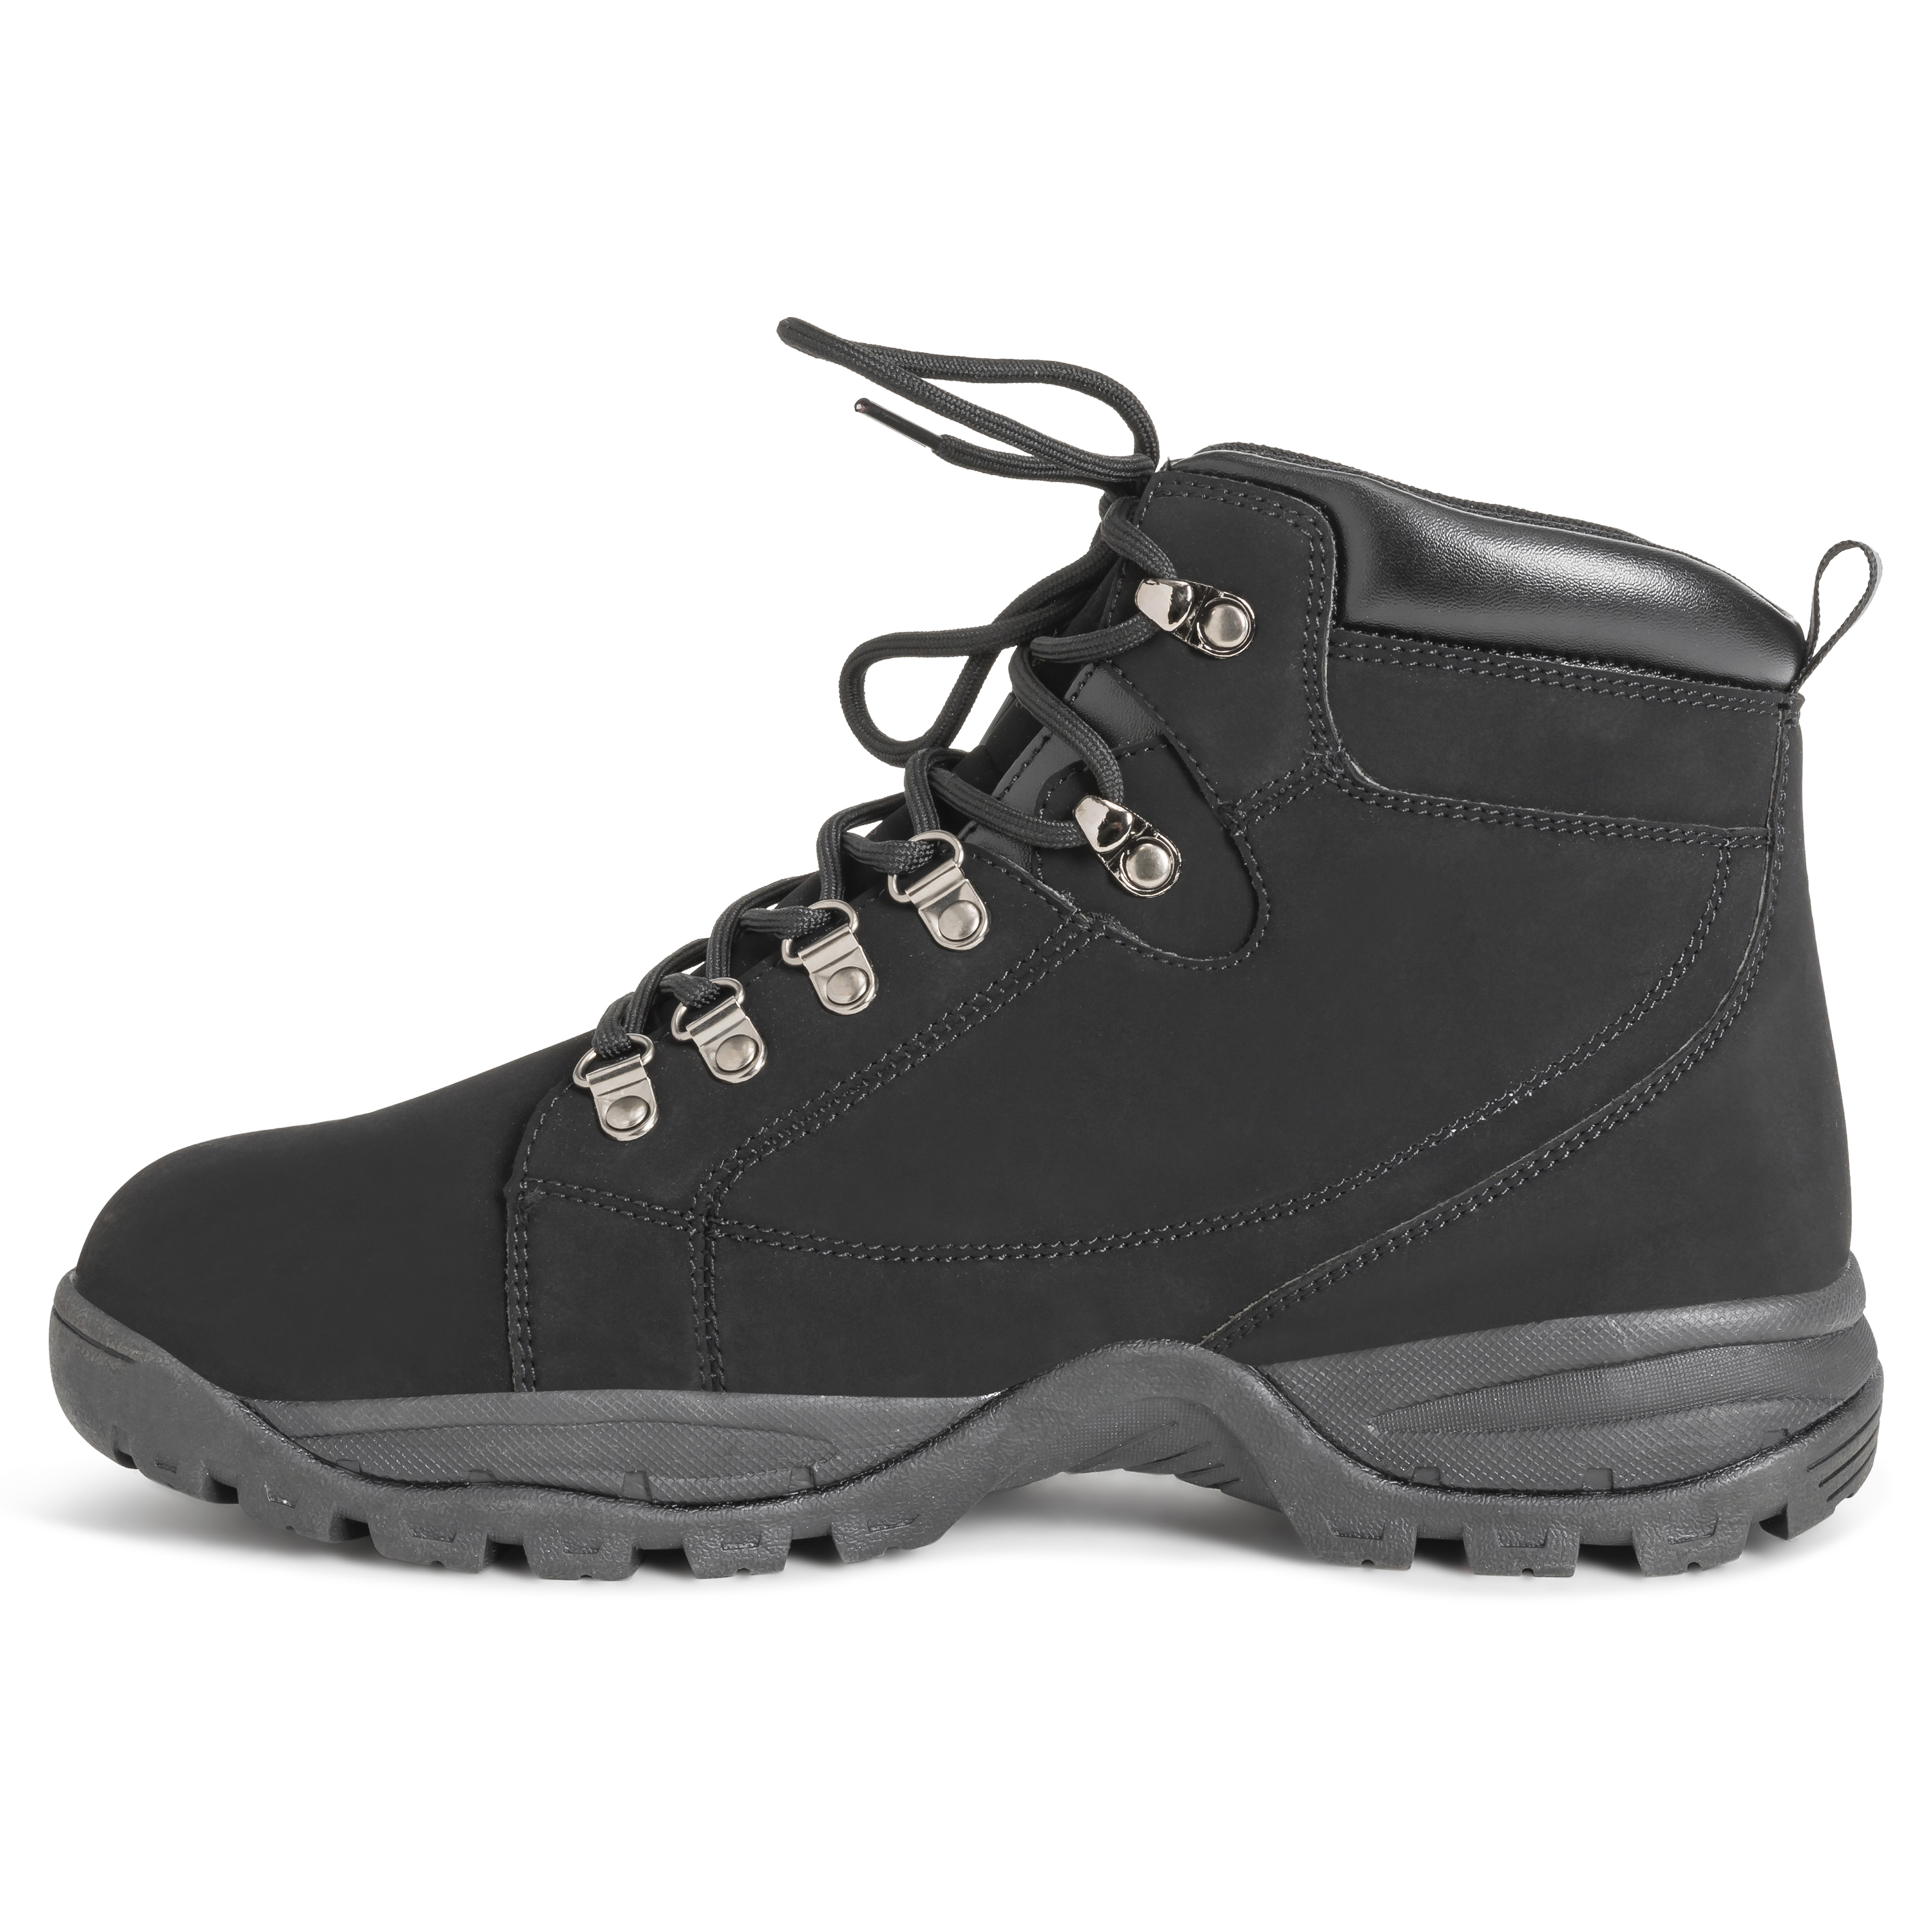 27afca164100 Details about Mens Hiker Safety Durable Rubber Sole Work Leather Steel Toe  Cap Boots US 7-15